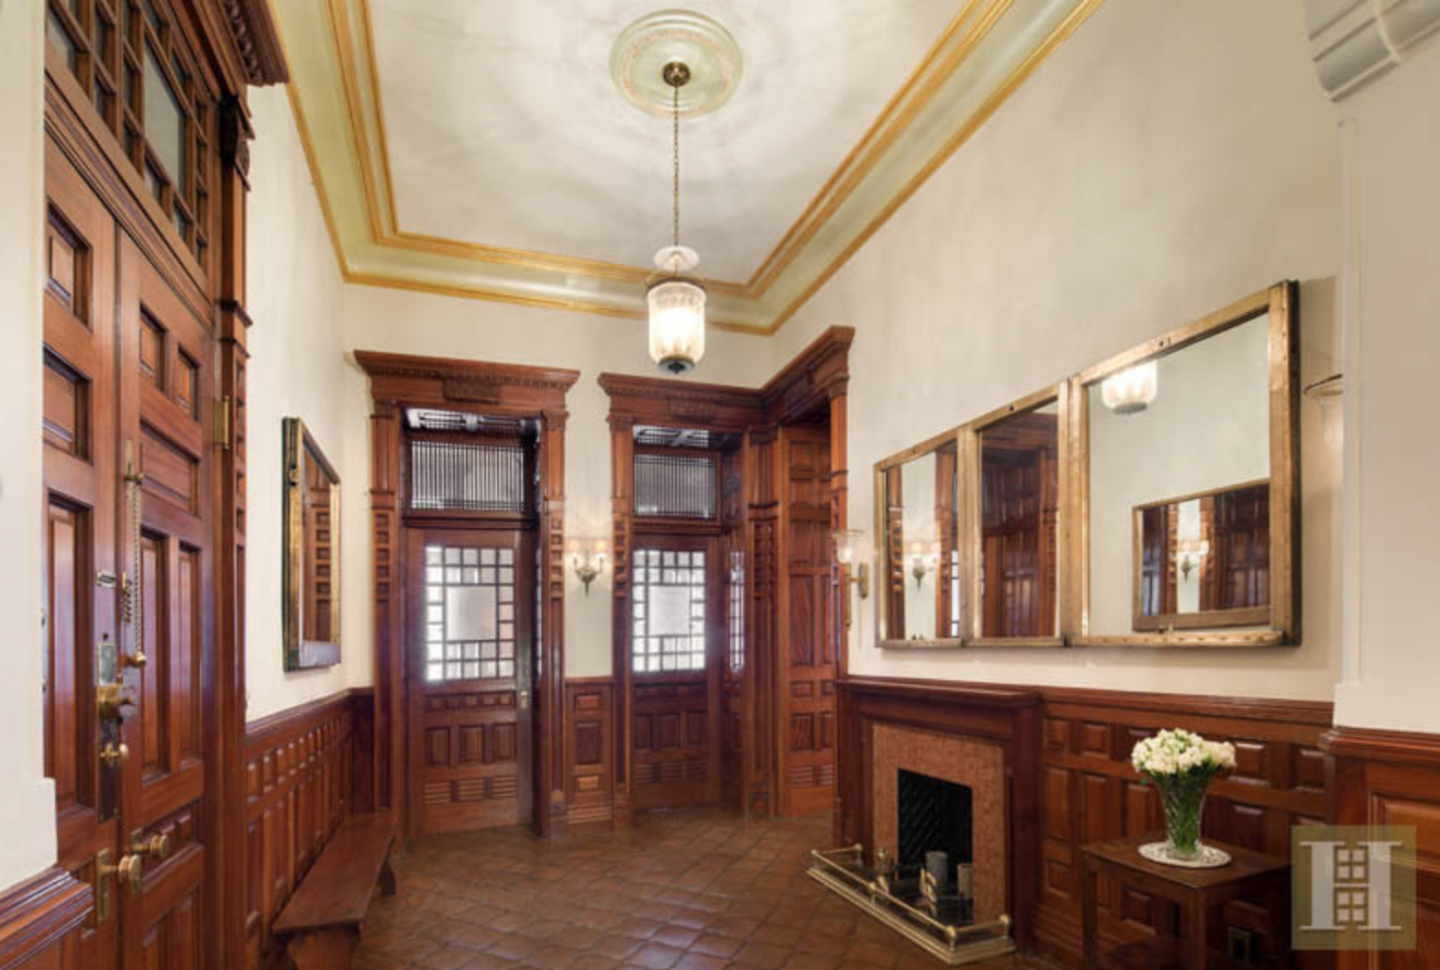 The 3,200-square-foot duplex retains the appeal it had when West Wide Story composer Leonard Bernstein owned it.